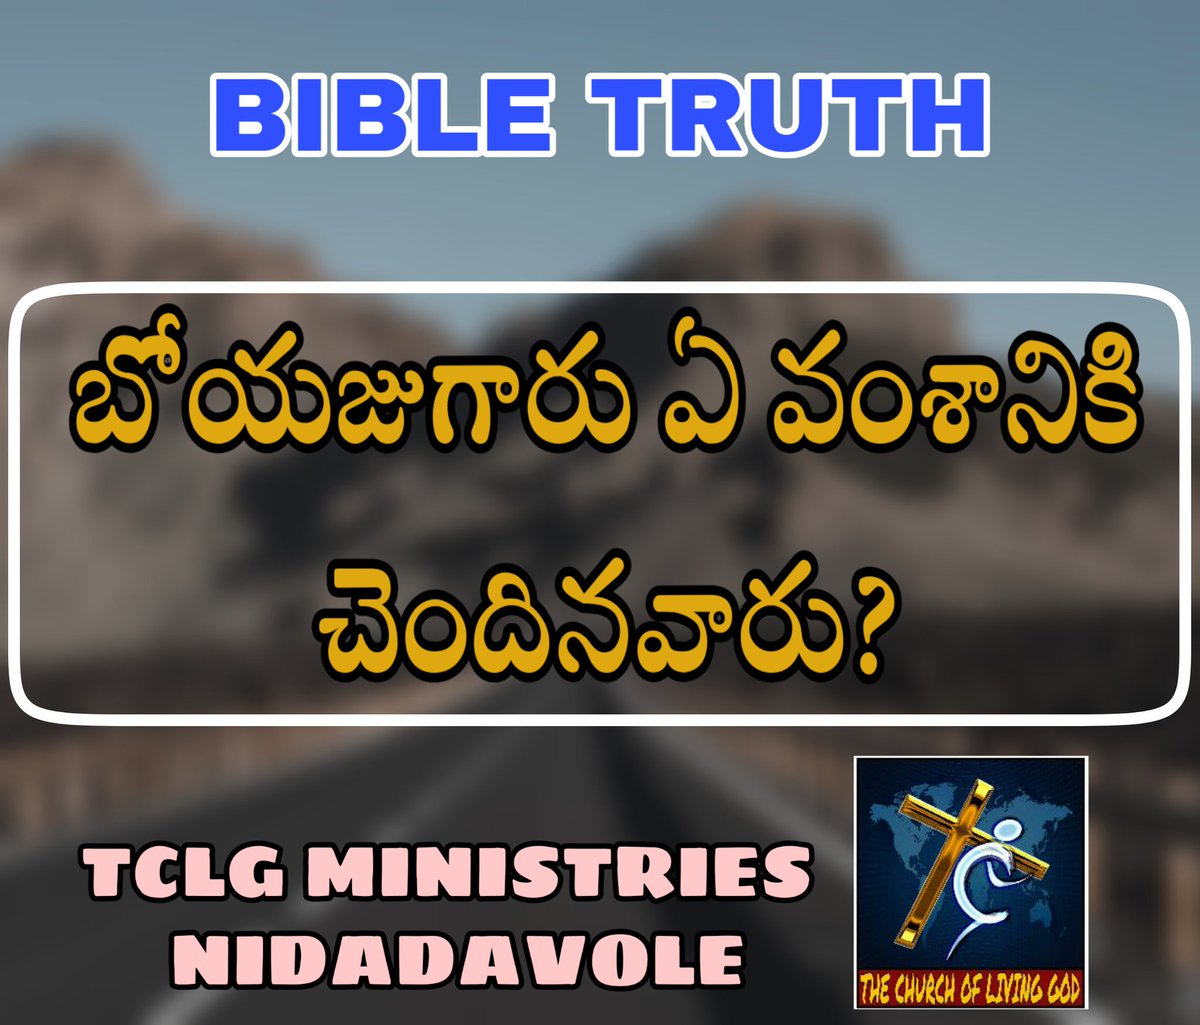 What is the name of the Boaz clan?Give Answer మీ విలువైన సమాధానం రిఫరెన్స్ తో పాటు తెలుపగలరు🙏💐 #Questionbox  #answer #Now #wisdom  #BibleStudy #WisdomWednesday #quote  #bibleverse  #powerful #wordsofwisdom #ThursdayThoughts